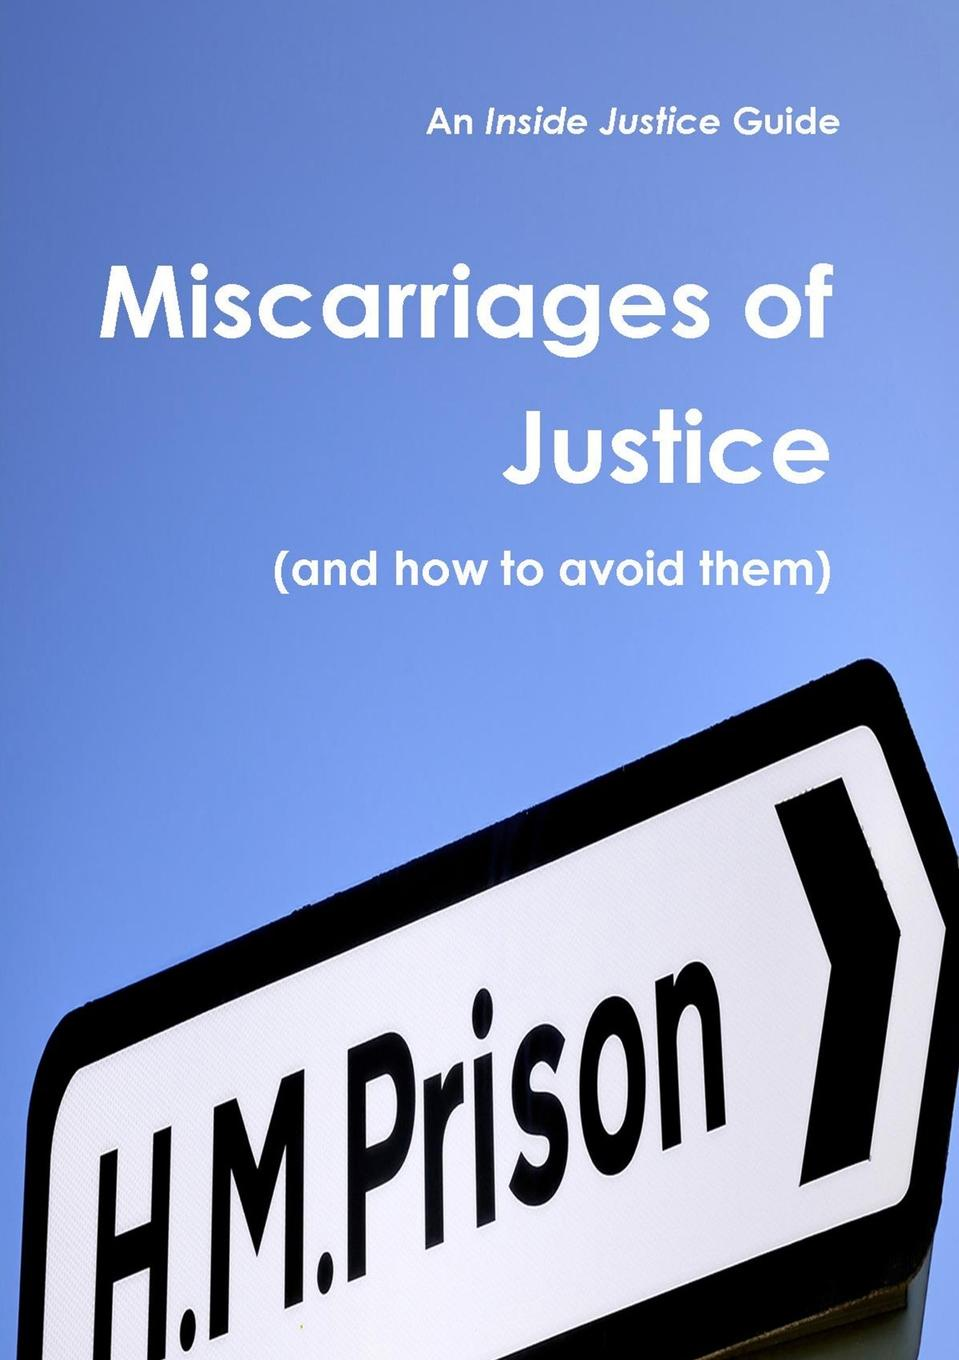 Inside Justice Miscarriages of Justice (and How to Avoid Them)